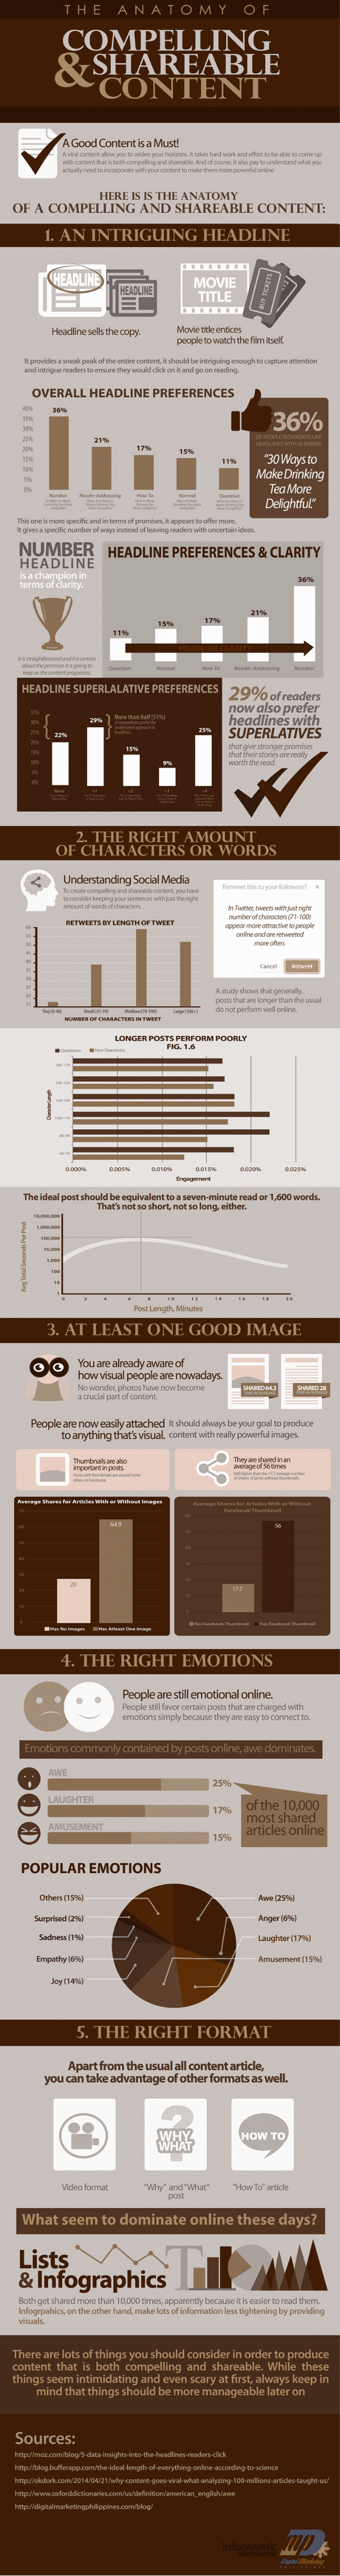 For more tips on what constitutes a compelling and shareable content, check out this great infographic!